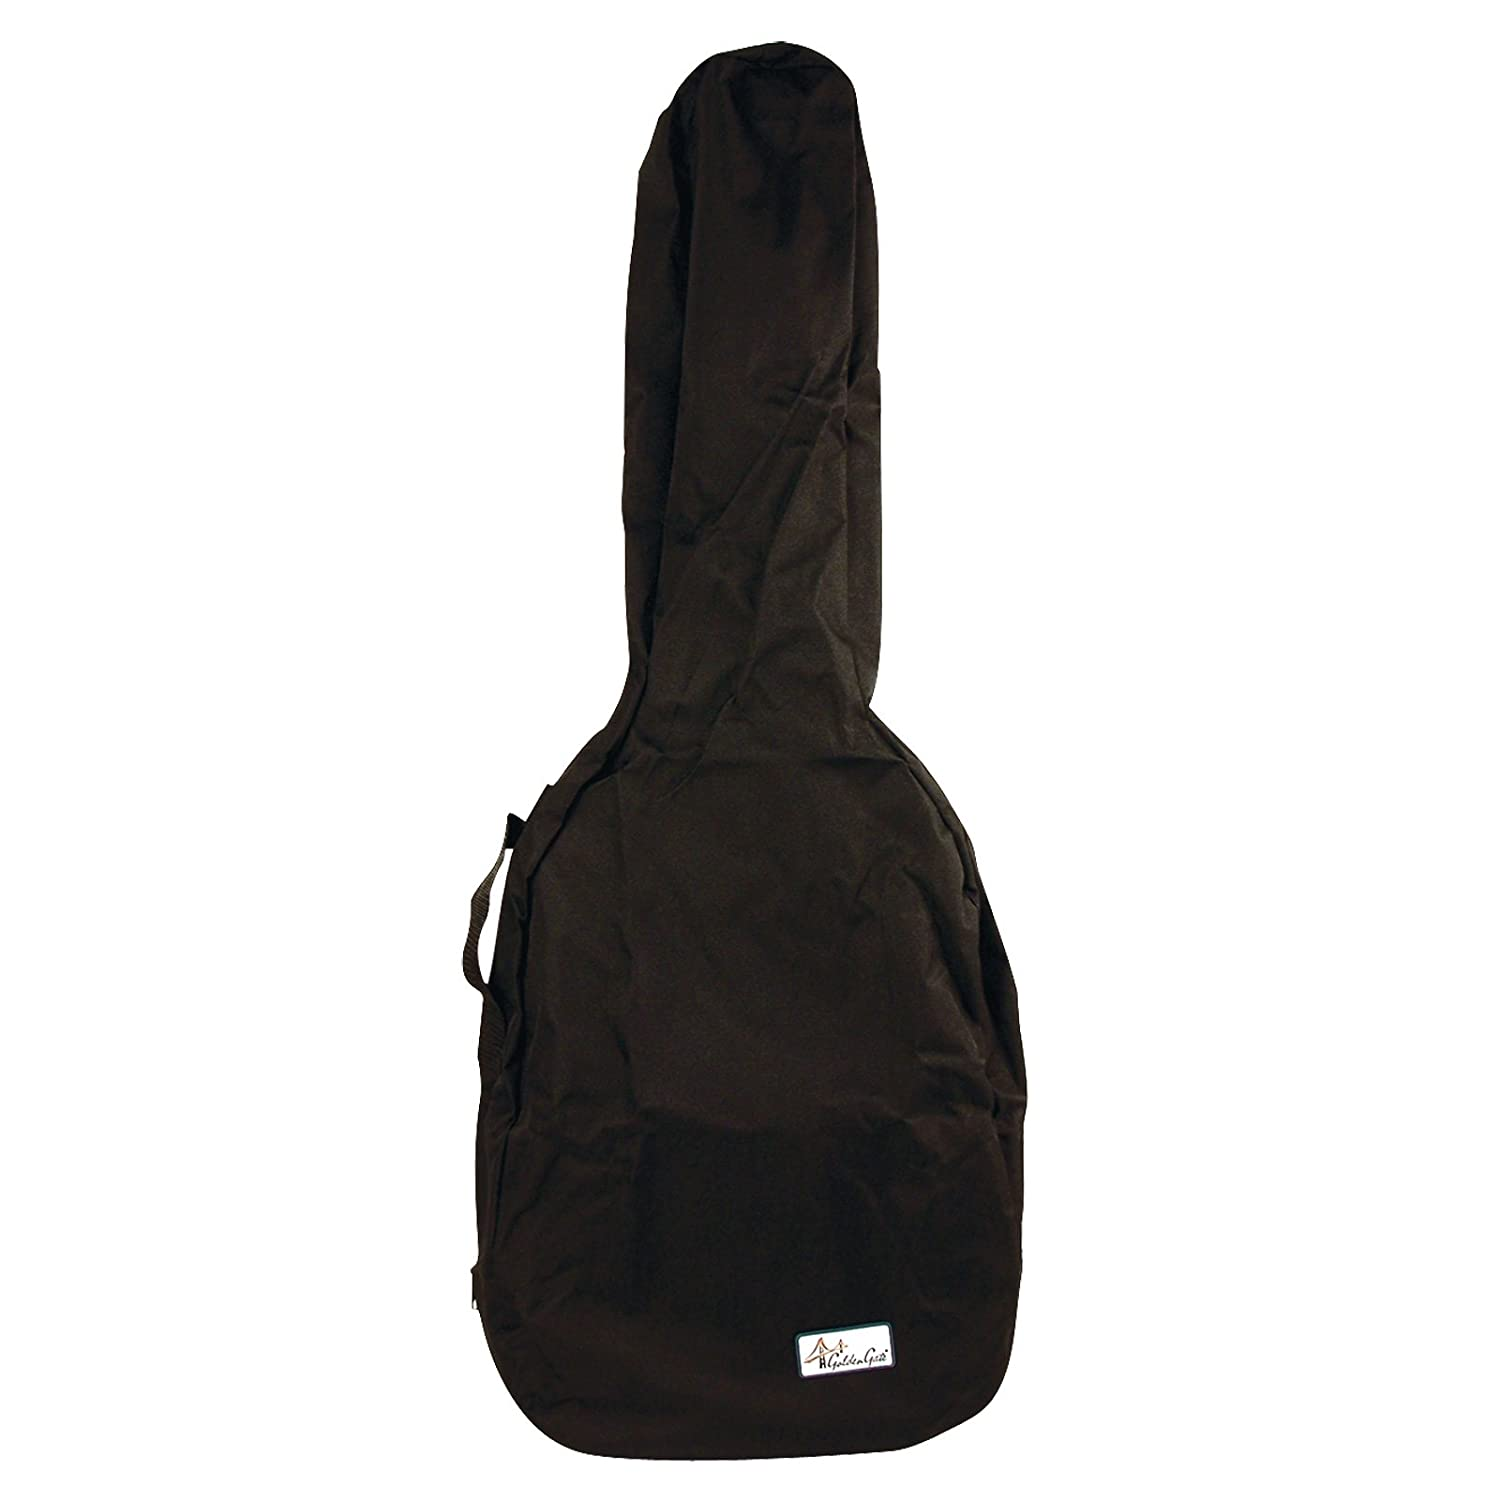 Golden Gate CG-052 Economy Classical-Resophonic Guitar Gig Bag